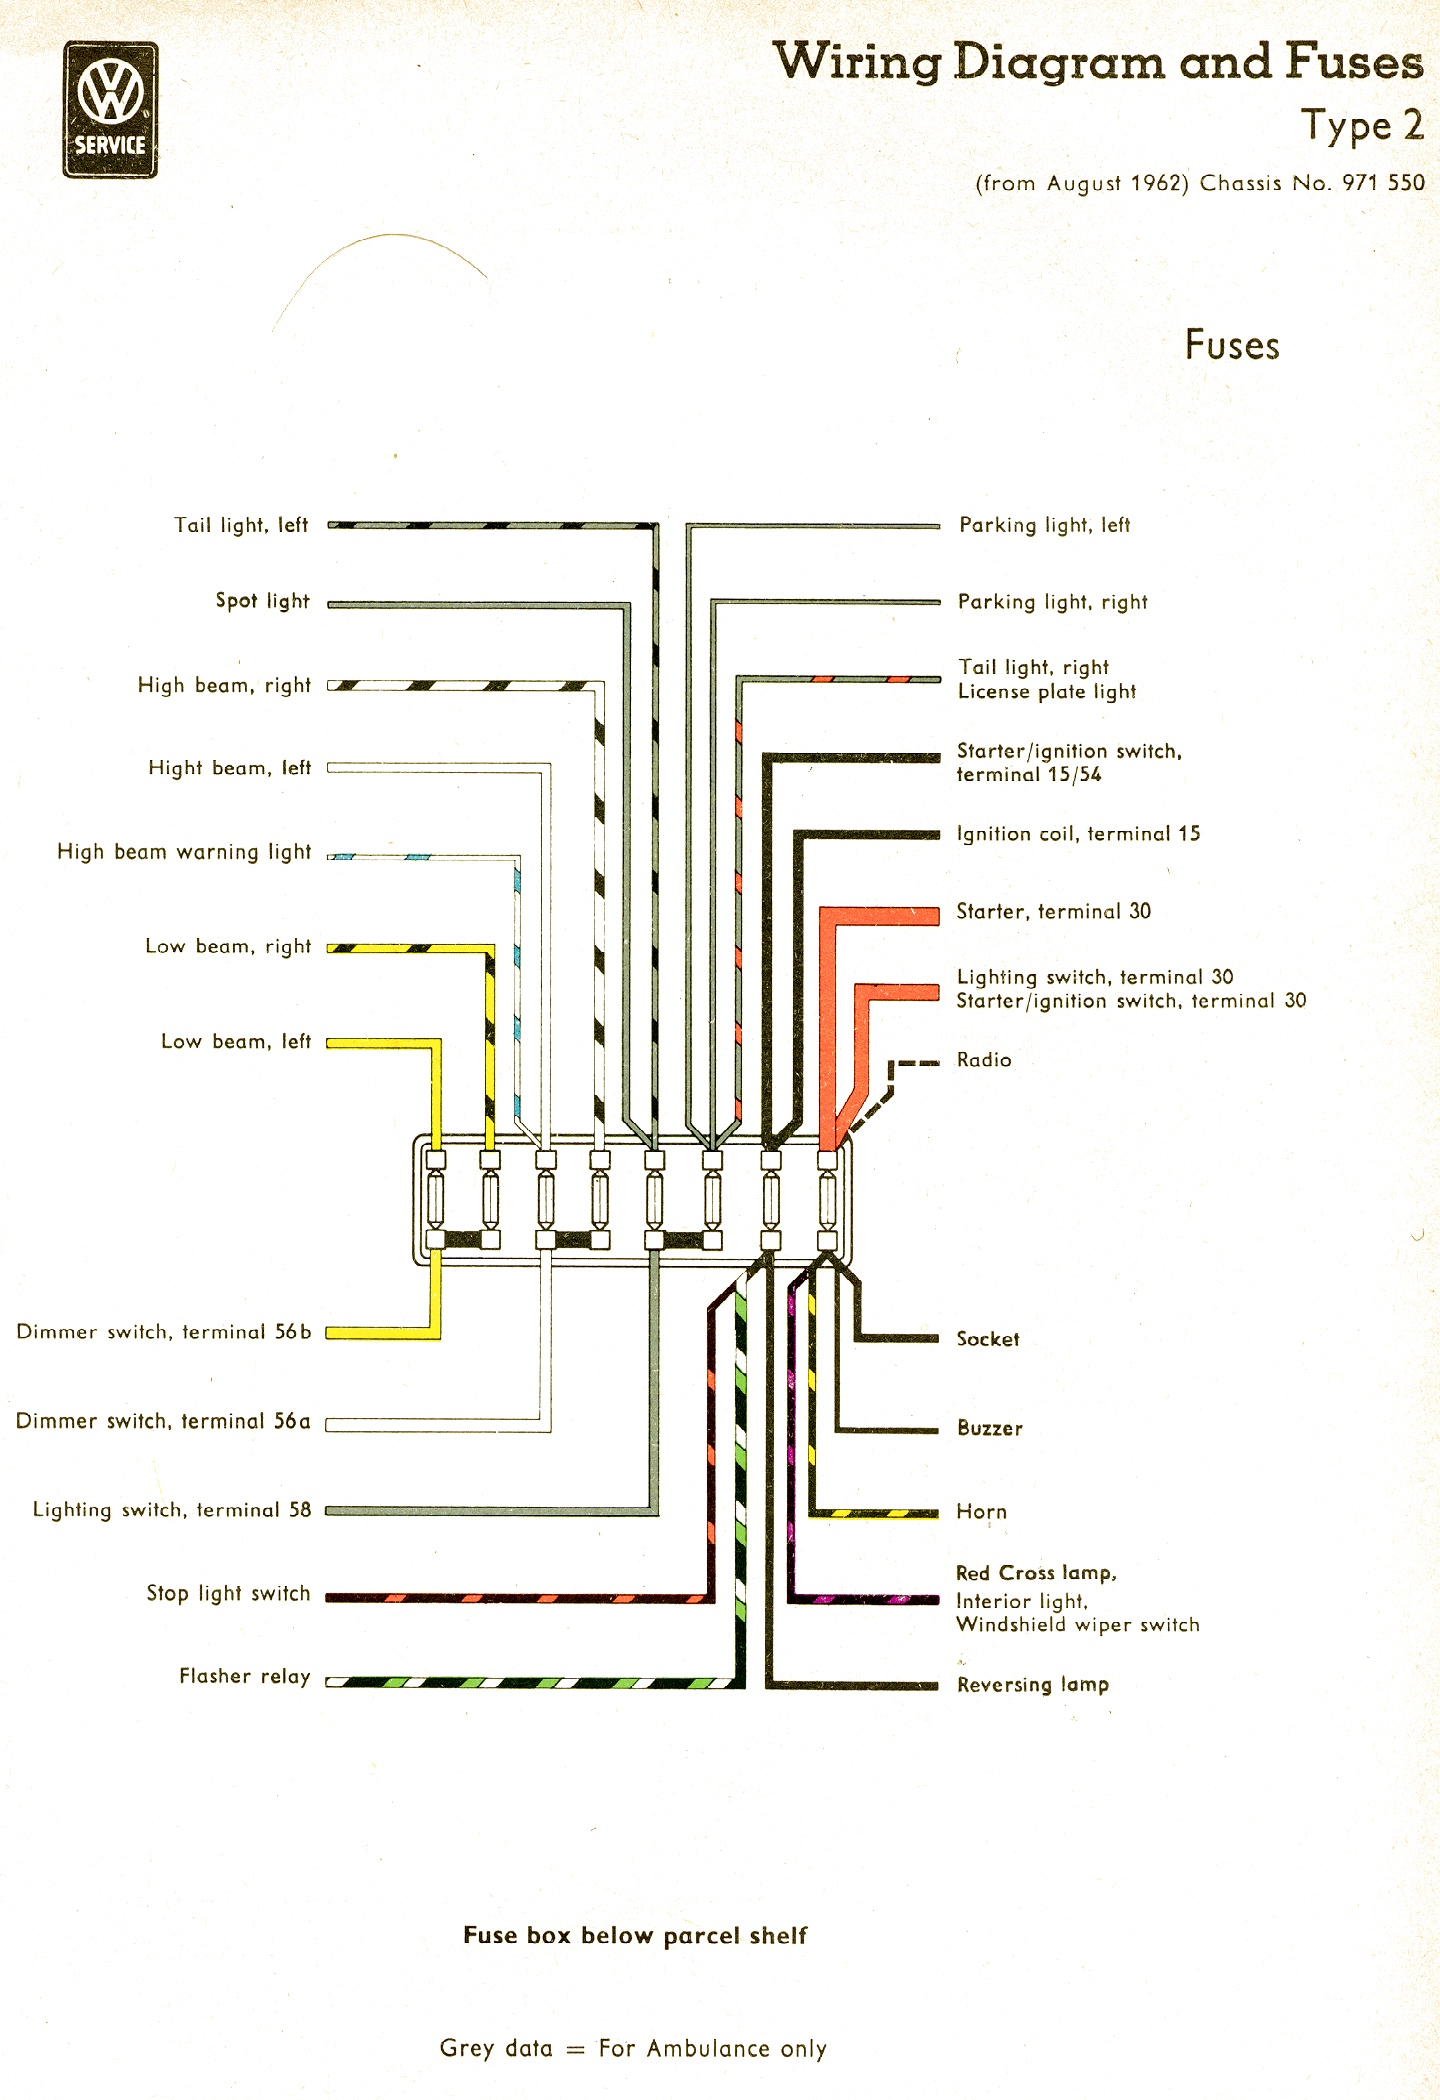 Vw Bus And Other Wiring Diagrams 1976 Chevelle Diagram Com